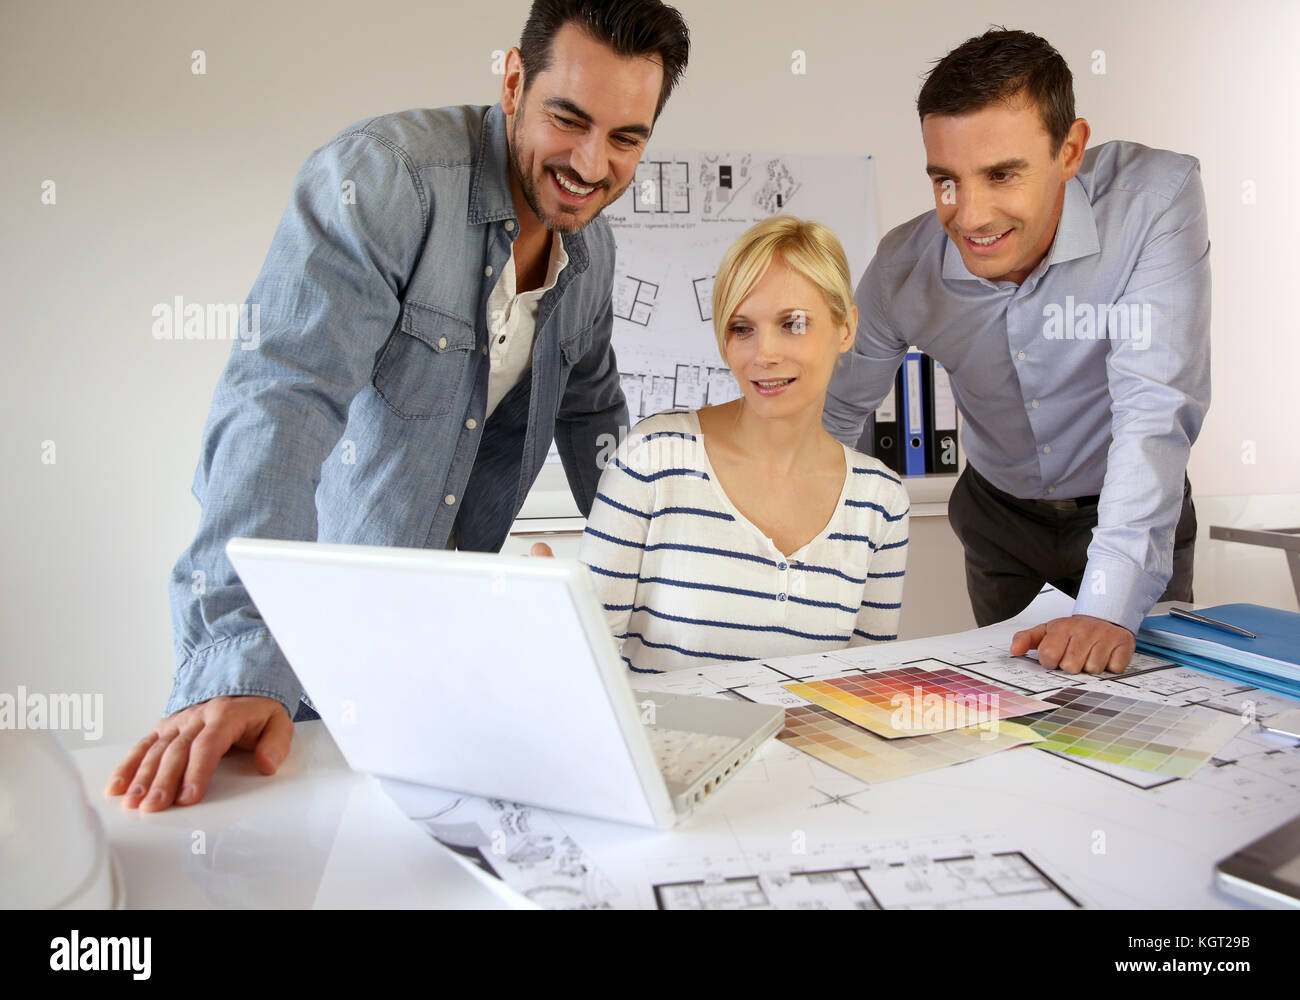 Team of architects presenting construction project - Stock Image